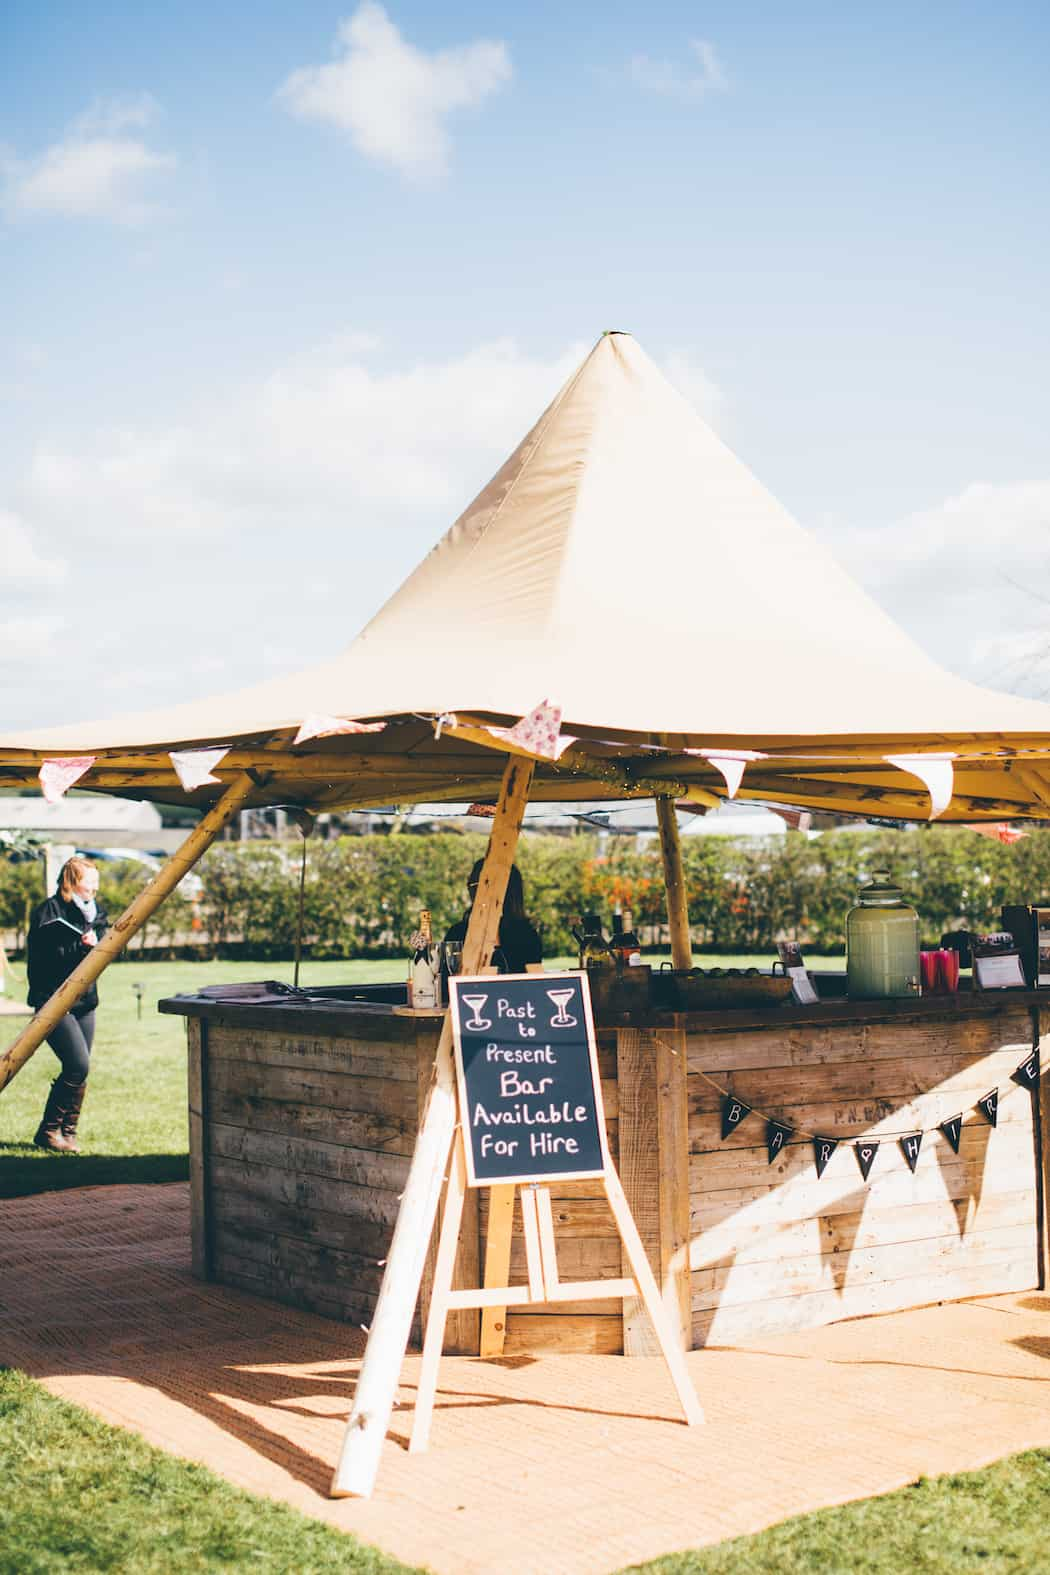 Sami Tipi Spring Showcase |Little Hat Tipi & Rustic Bar | Captured by Christopher Terry Photography